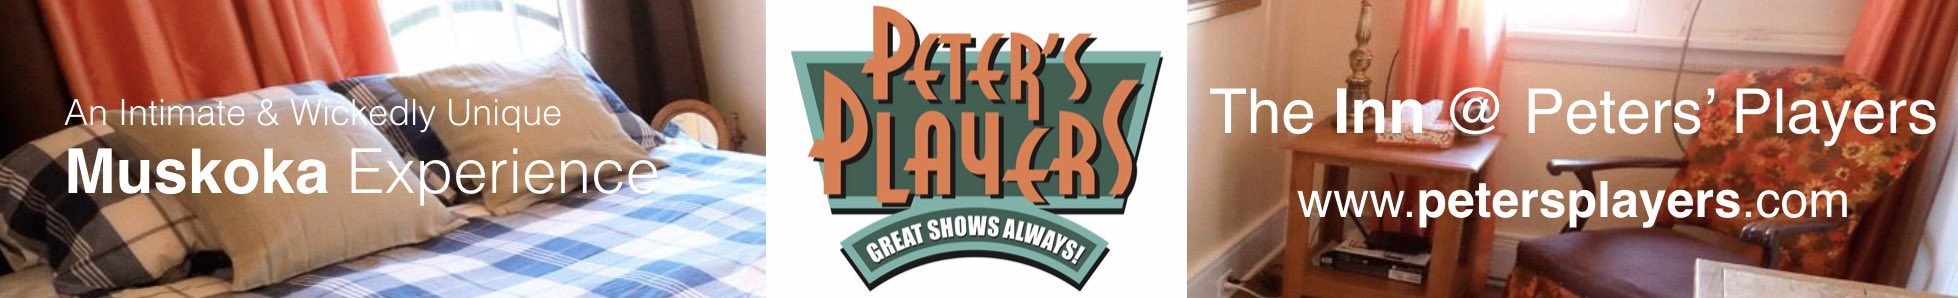 Peters Players Inn ad